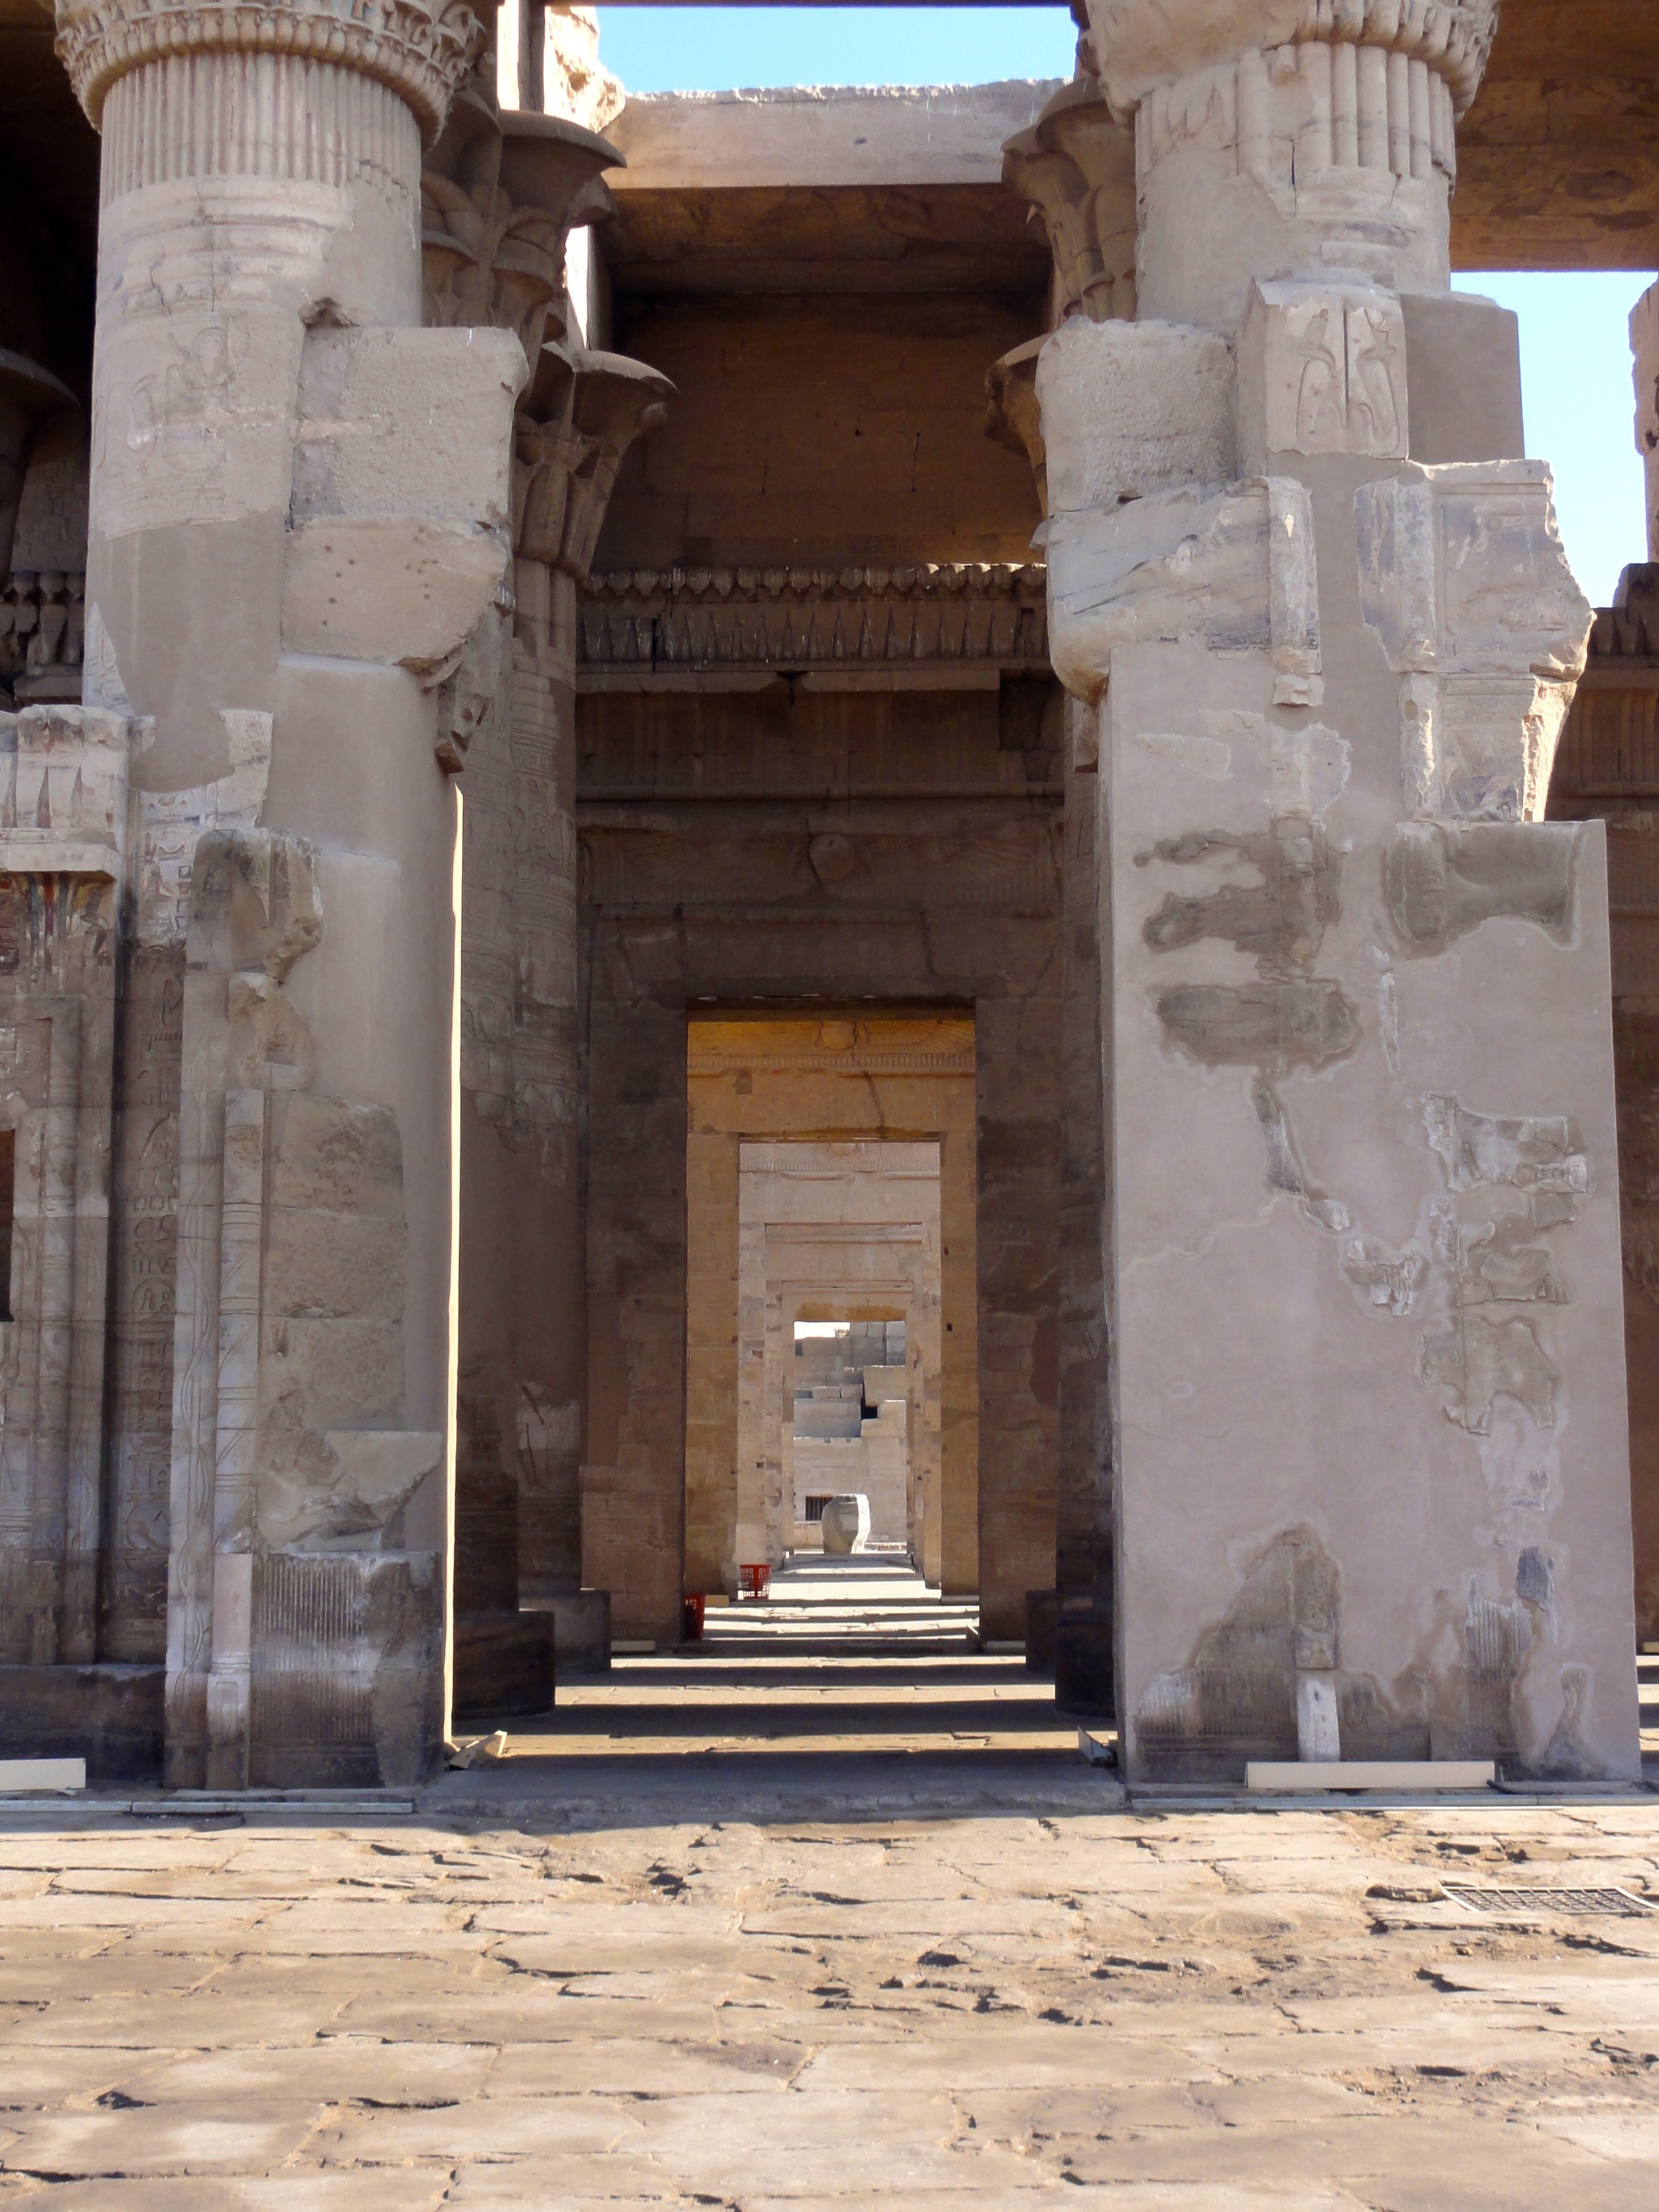 Doorway through to Holy of Holies